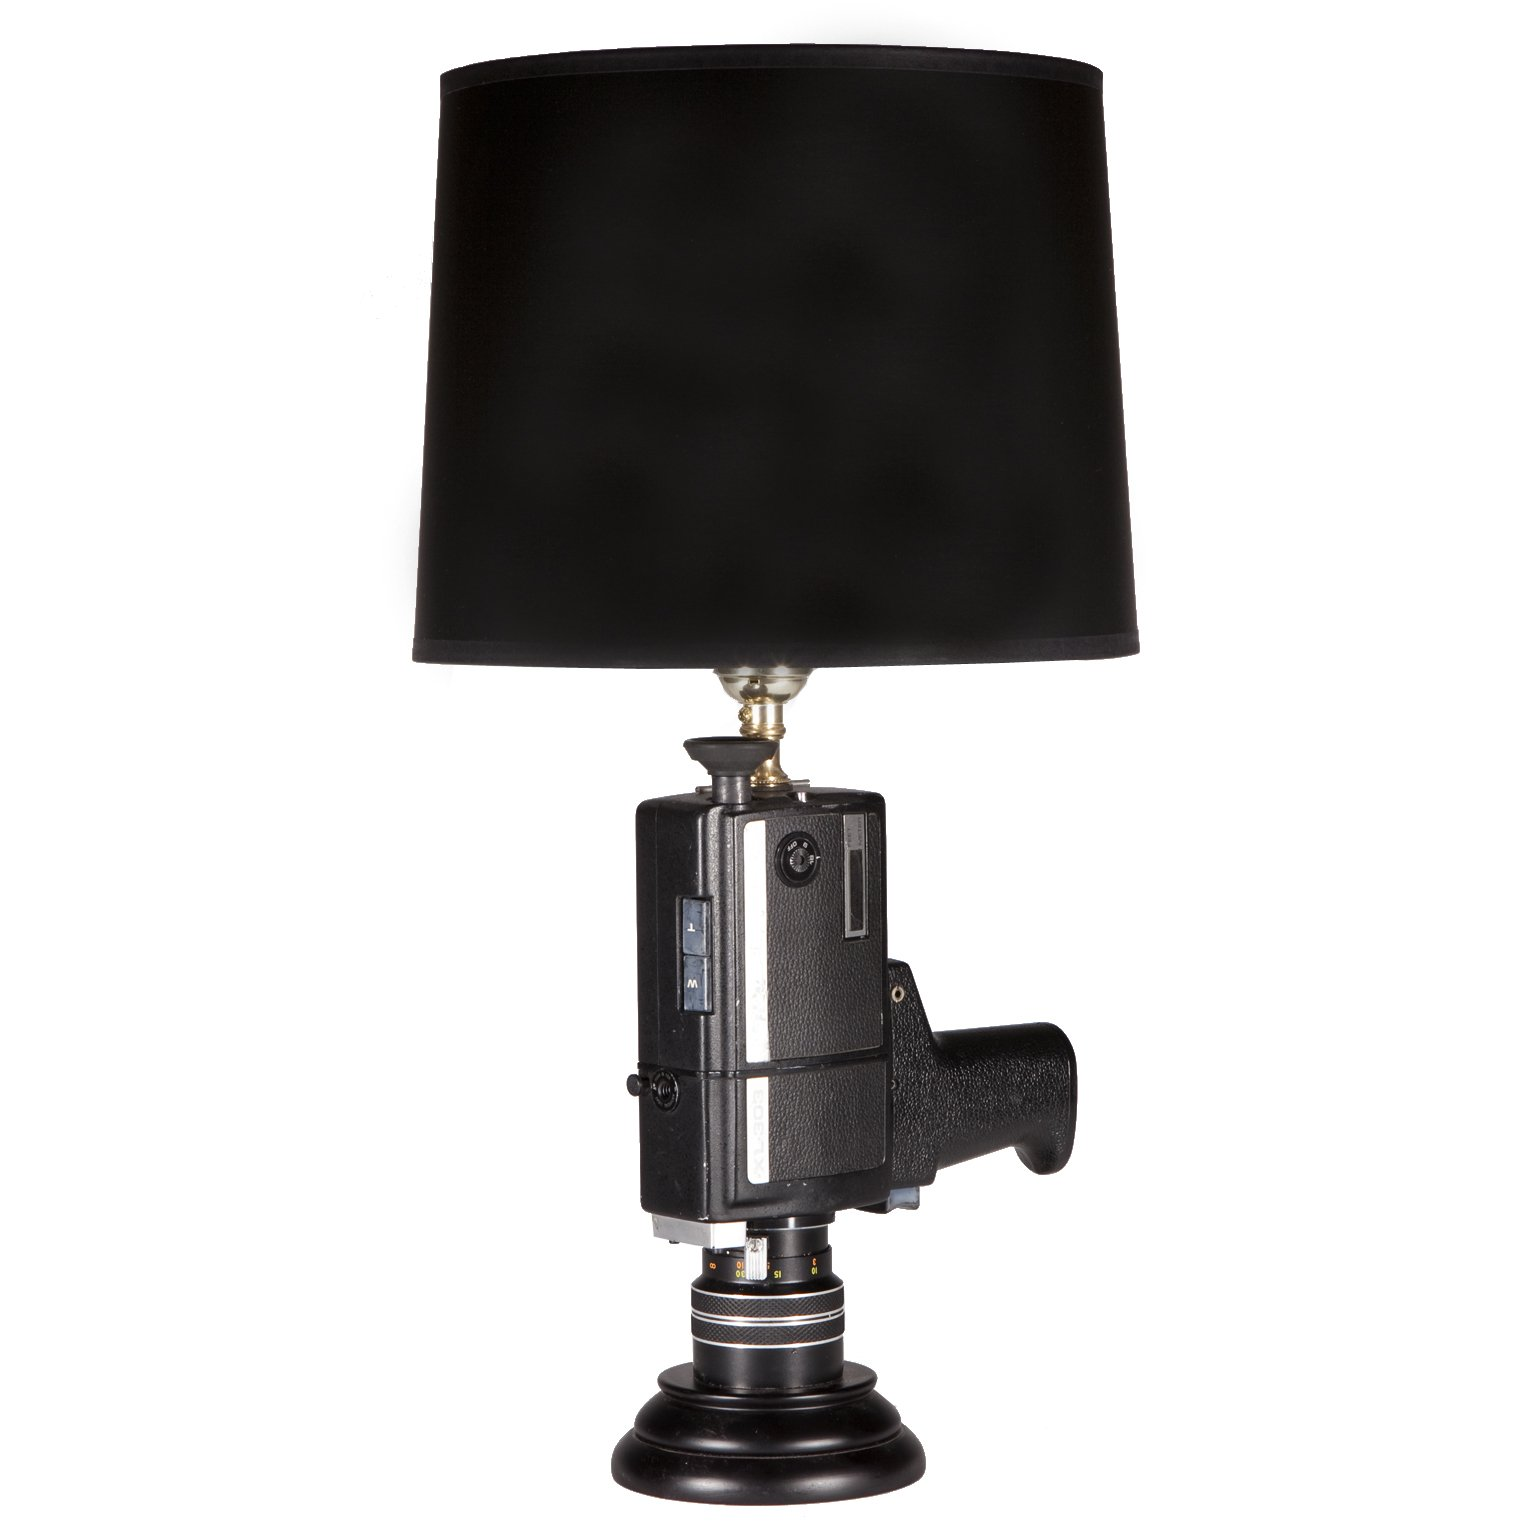 Unique Up-cycled Movie Camera Table Lamp